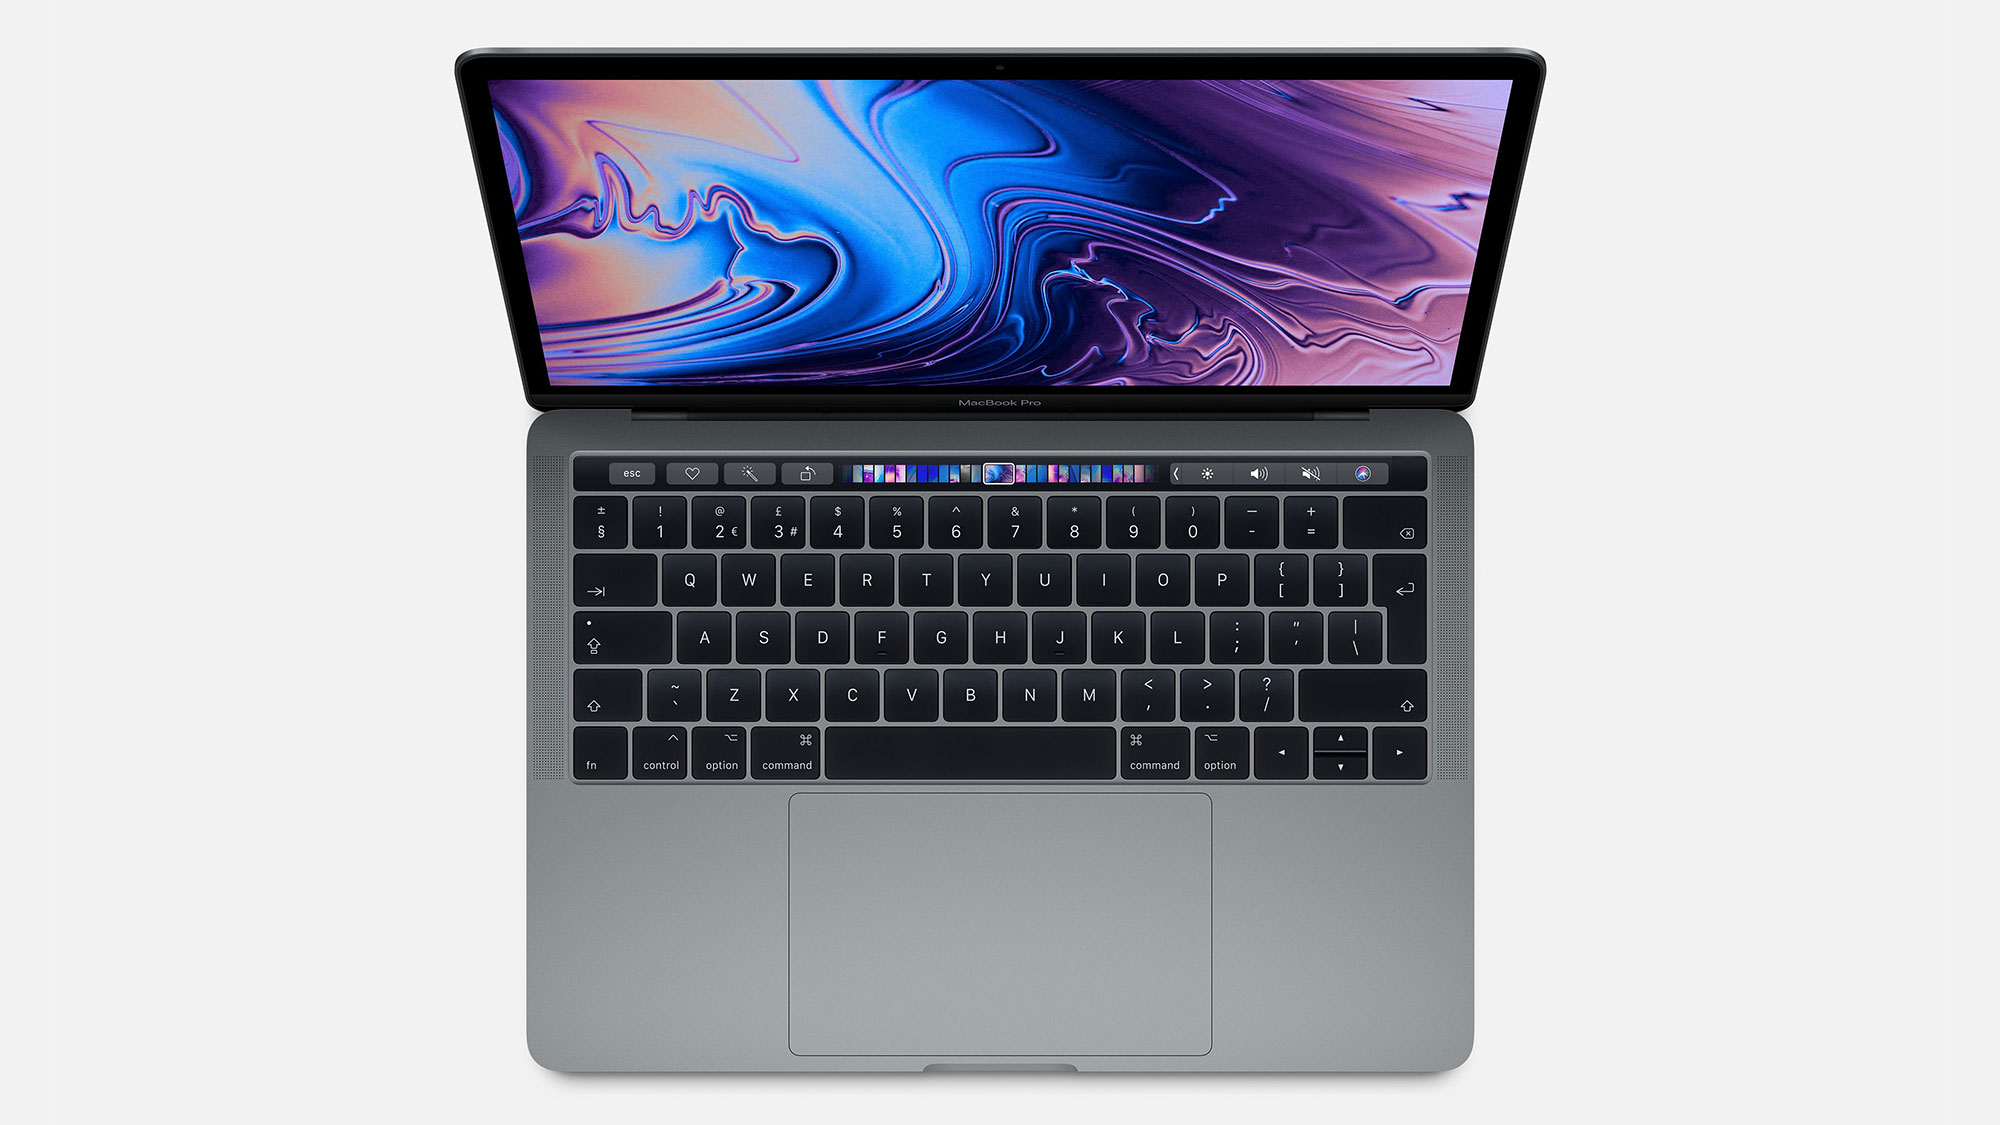 android app for asus laptop